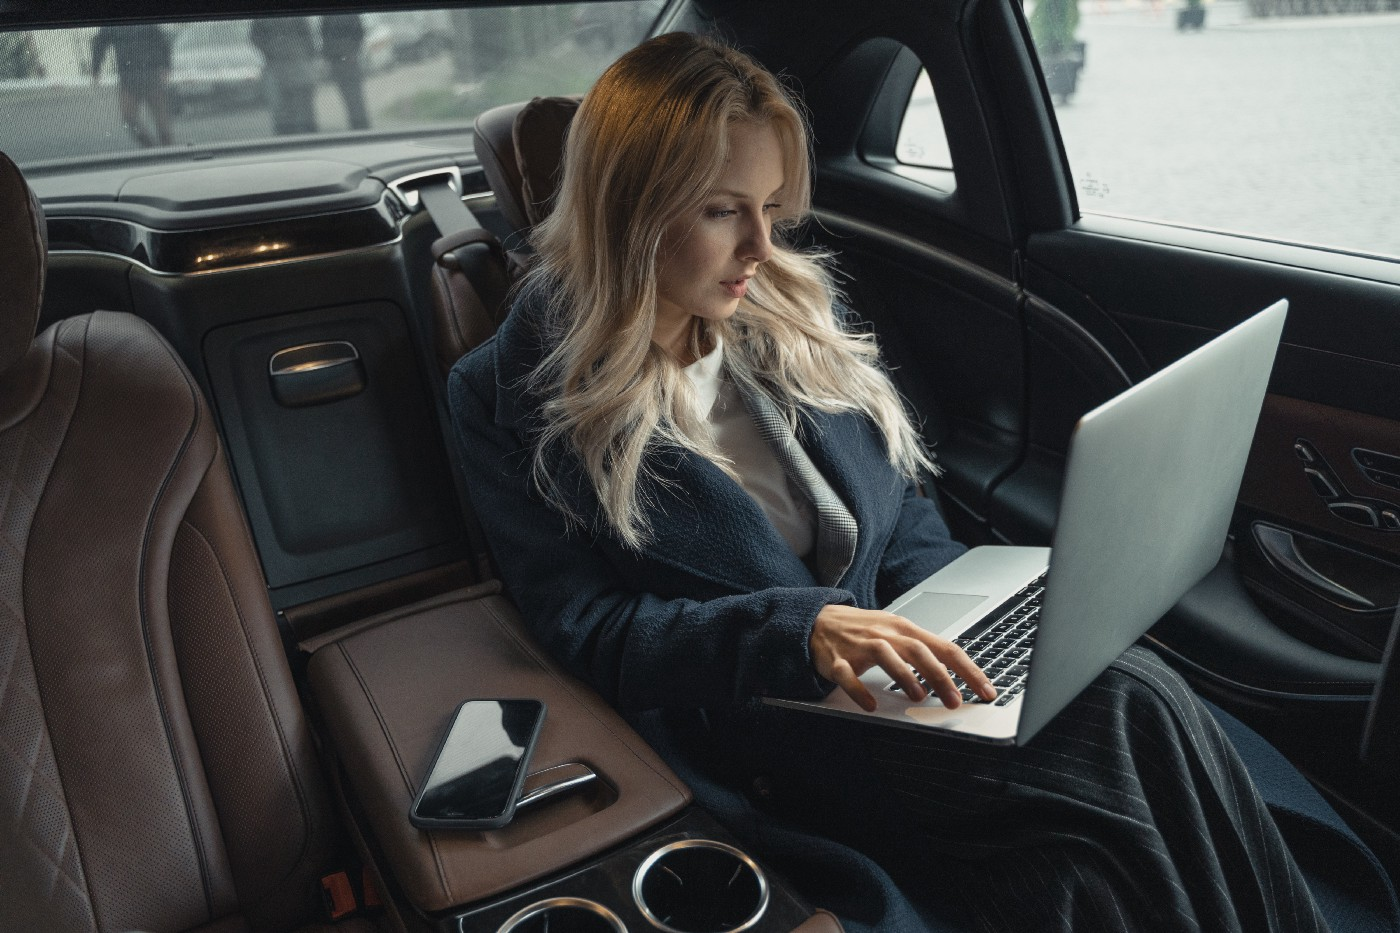 Woman working on her laptop while reclining in a luxury car. Leather seats.